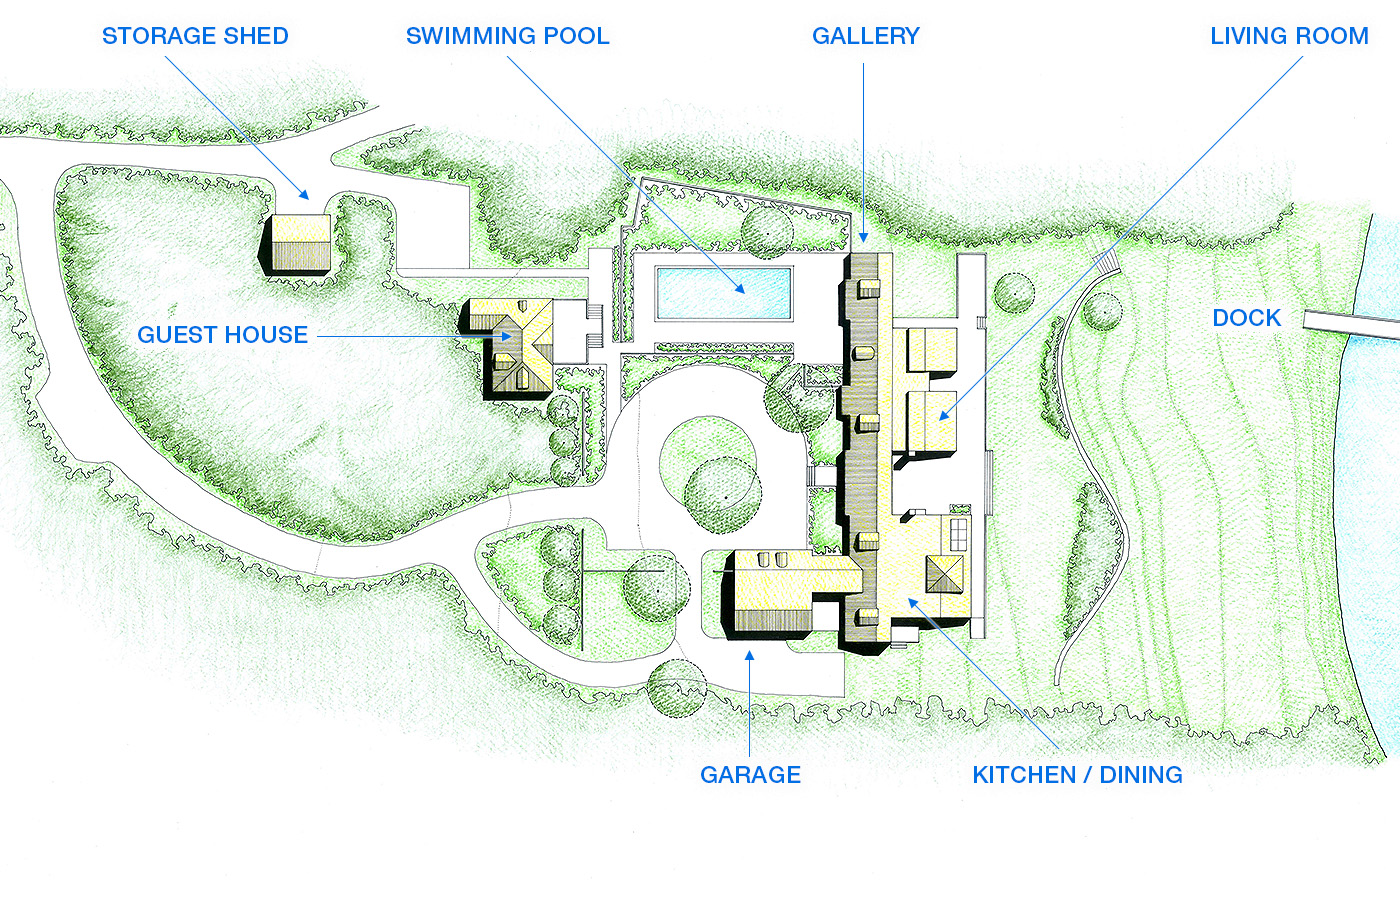 Krueger associates architects projects jones house site plan by krueger associates architects malvernweather Image collections